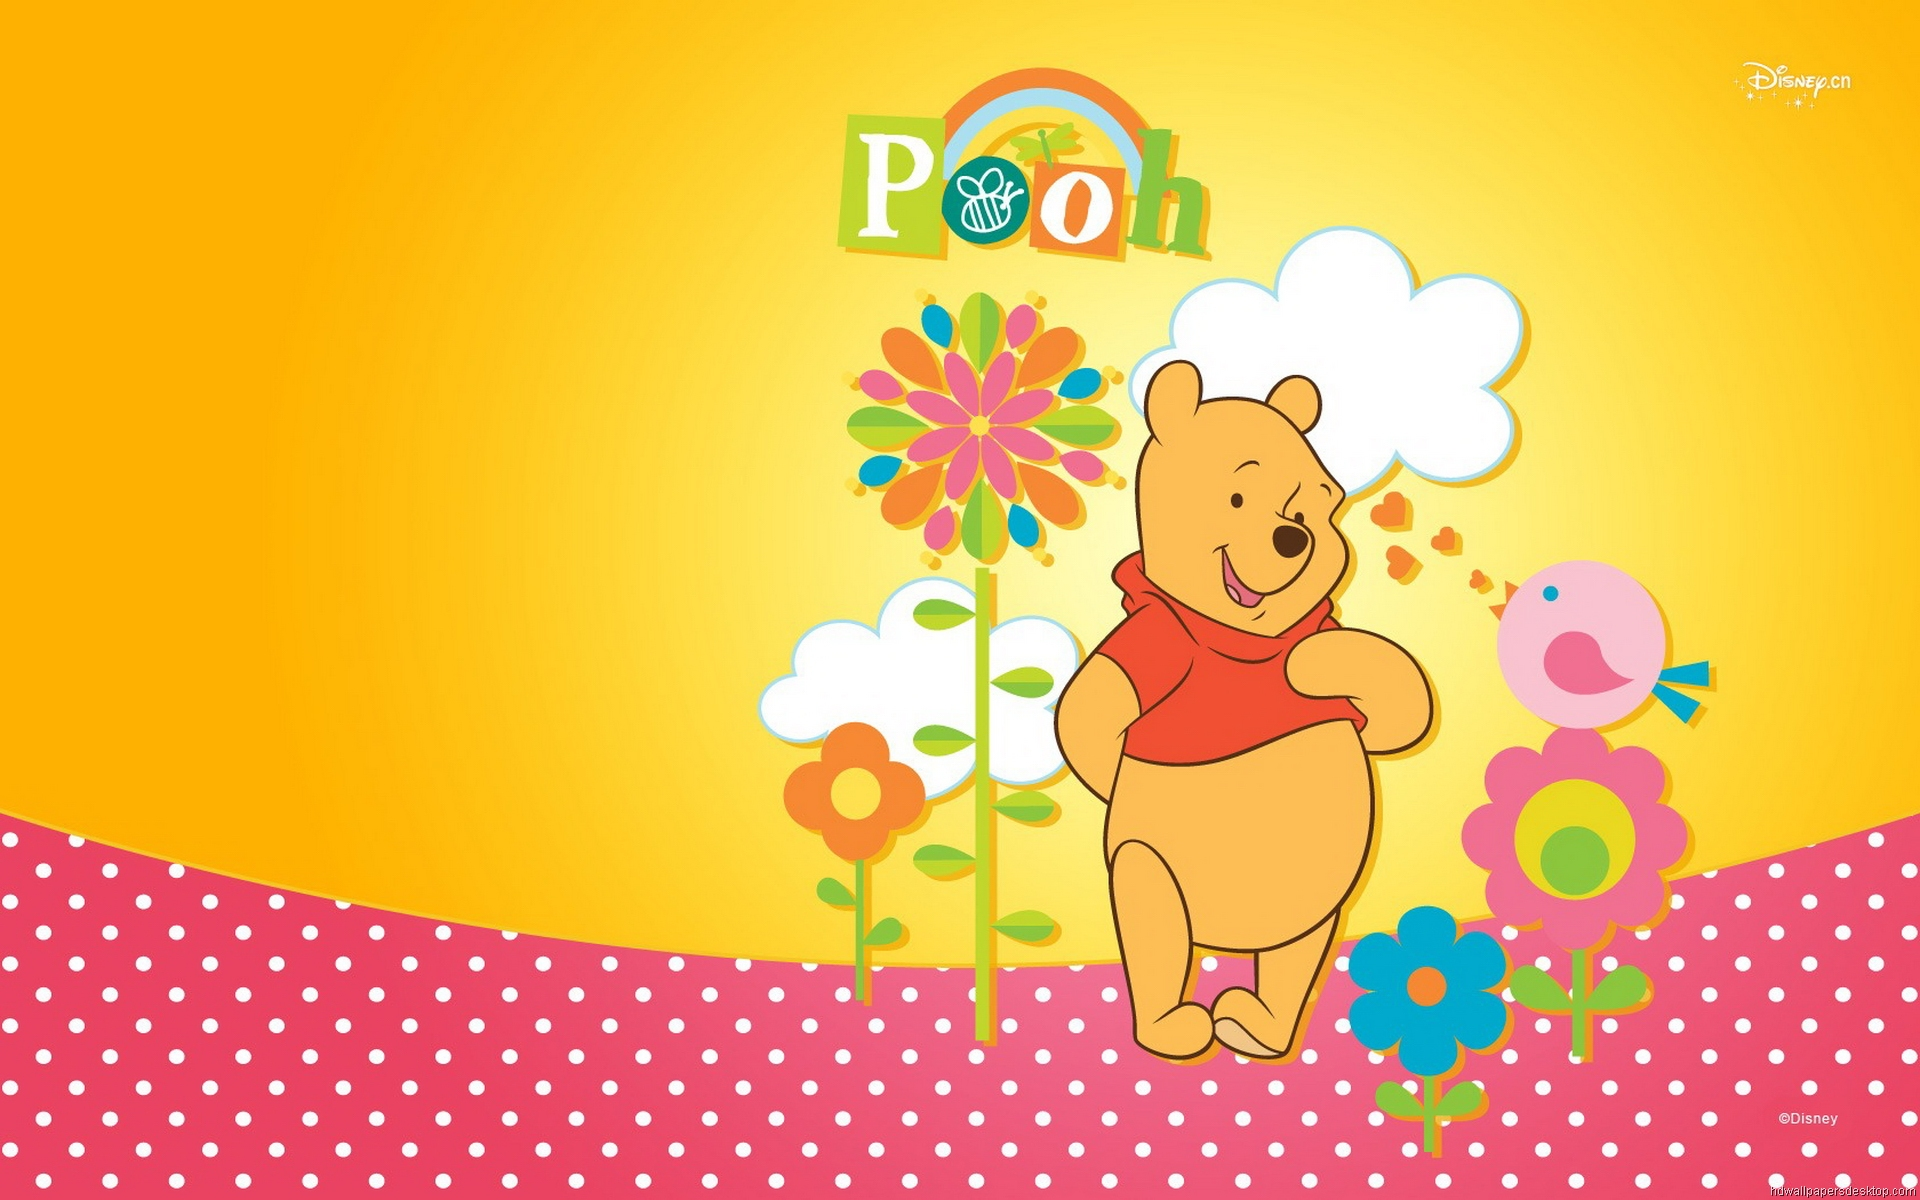 Winnie the pooh wallpapers hd a8 hd desktop wallpapers 4k hd winnie the pooh wallpapers hd a8 voltagebd Images